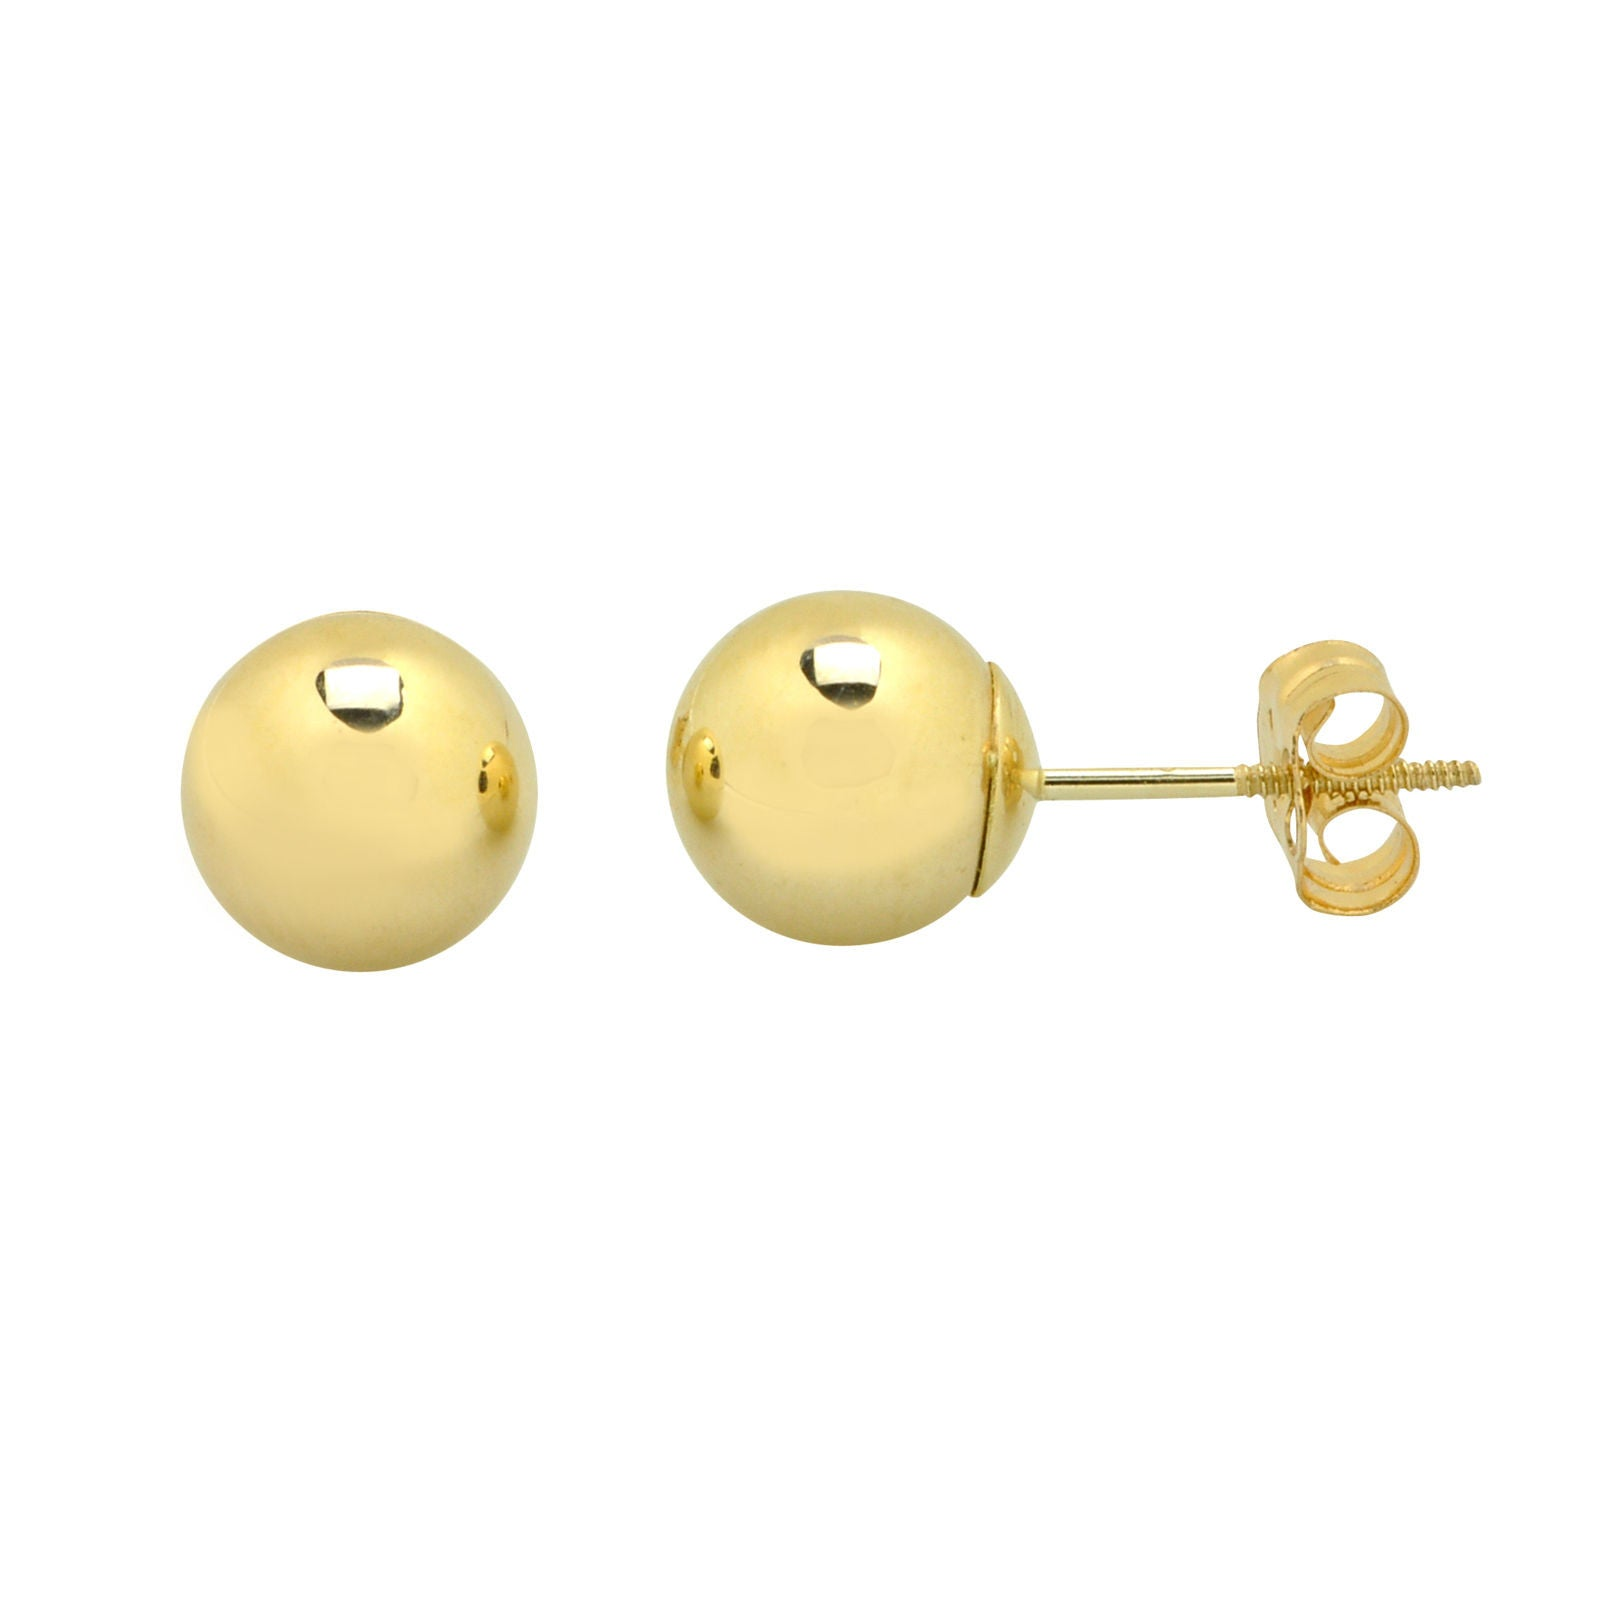 fff3b34e5 14k Yellow Gold Ball Stud Earrings Special Wing Nut Screwback High Polish -  New